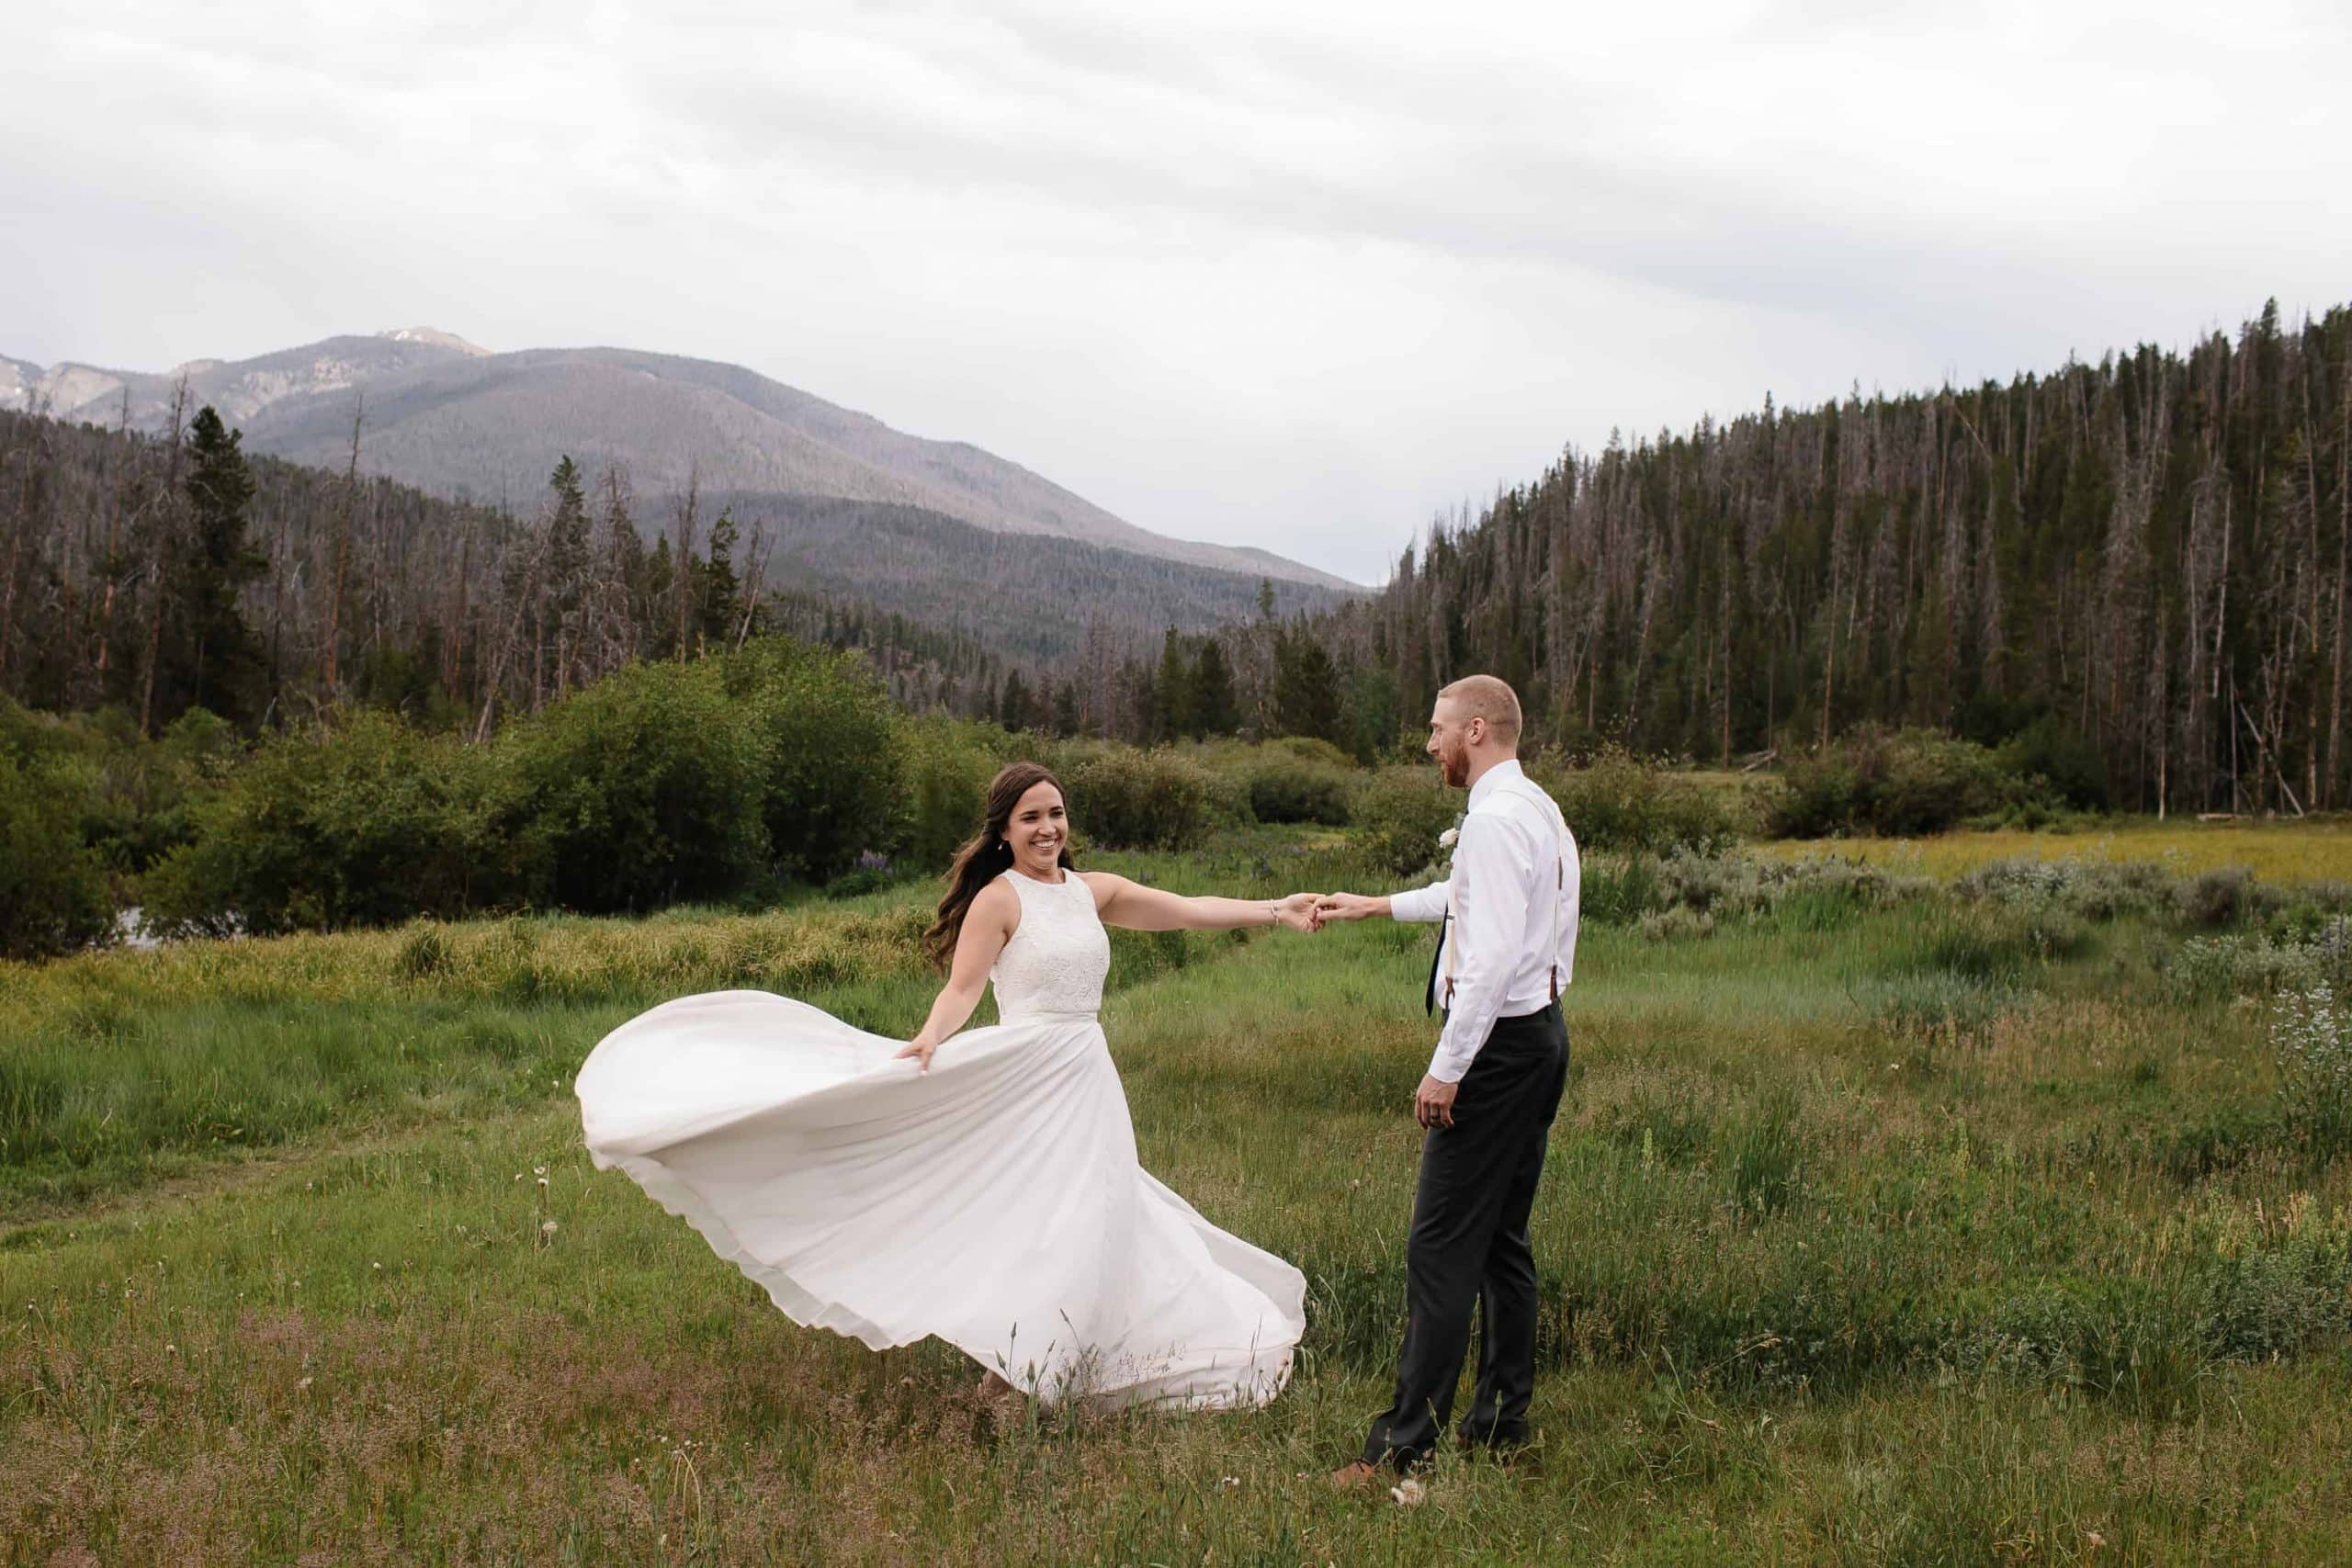 bride and groom dance in a fields after ceremony